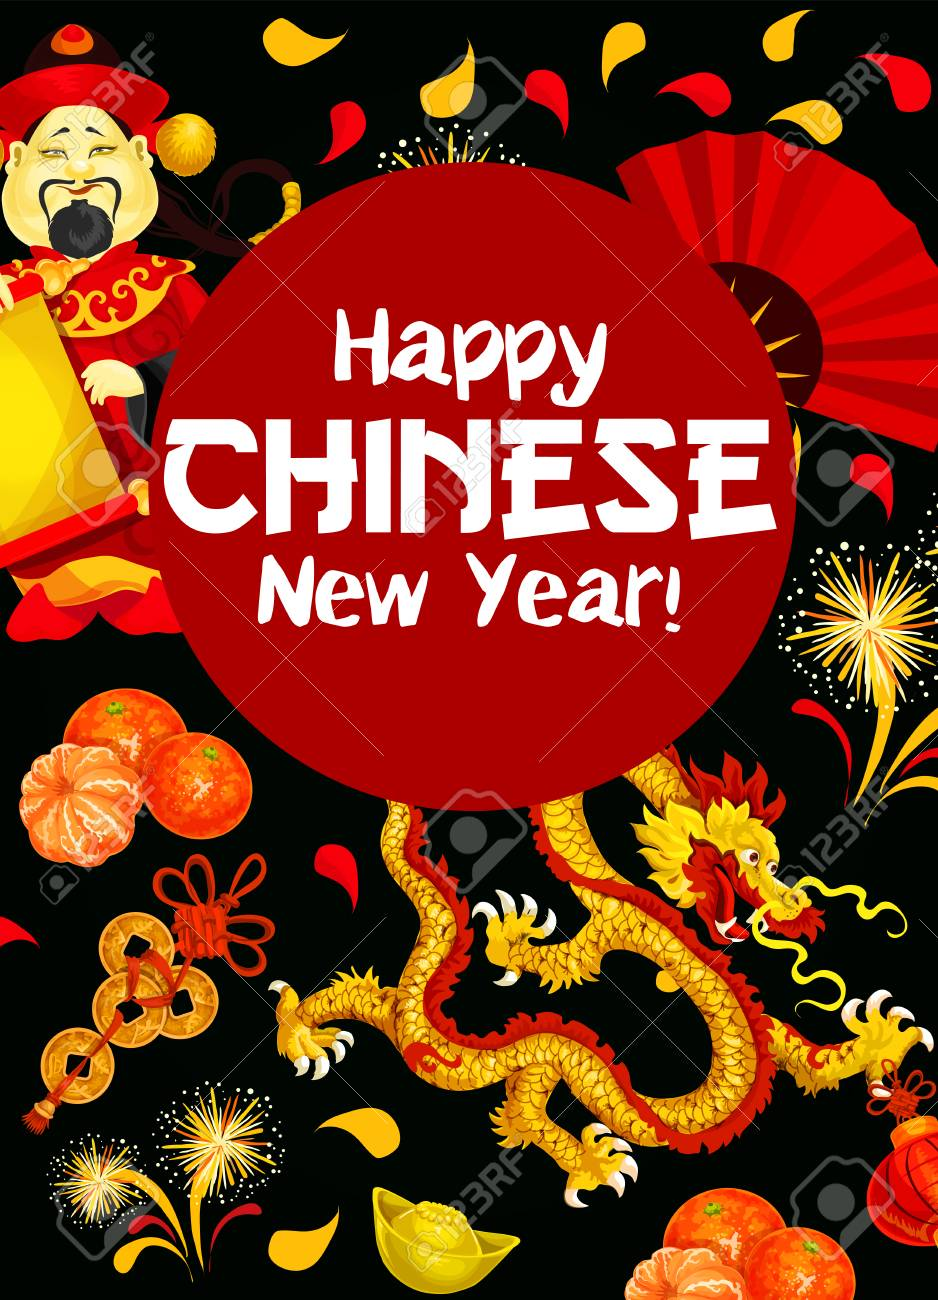 Happy Chinese New Year Wishes Poster With Oriental Holiday Symbols ...